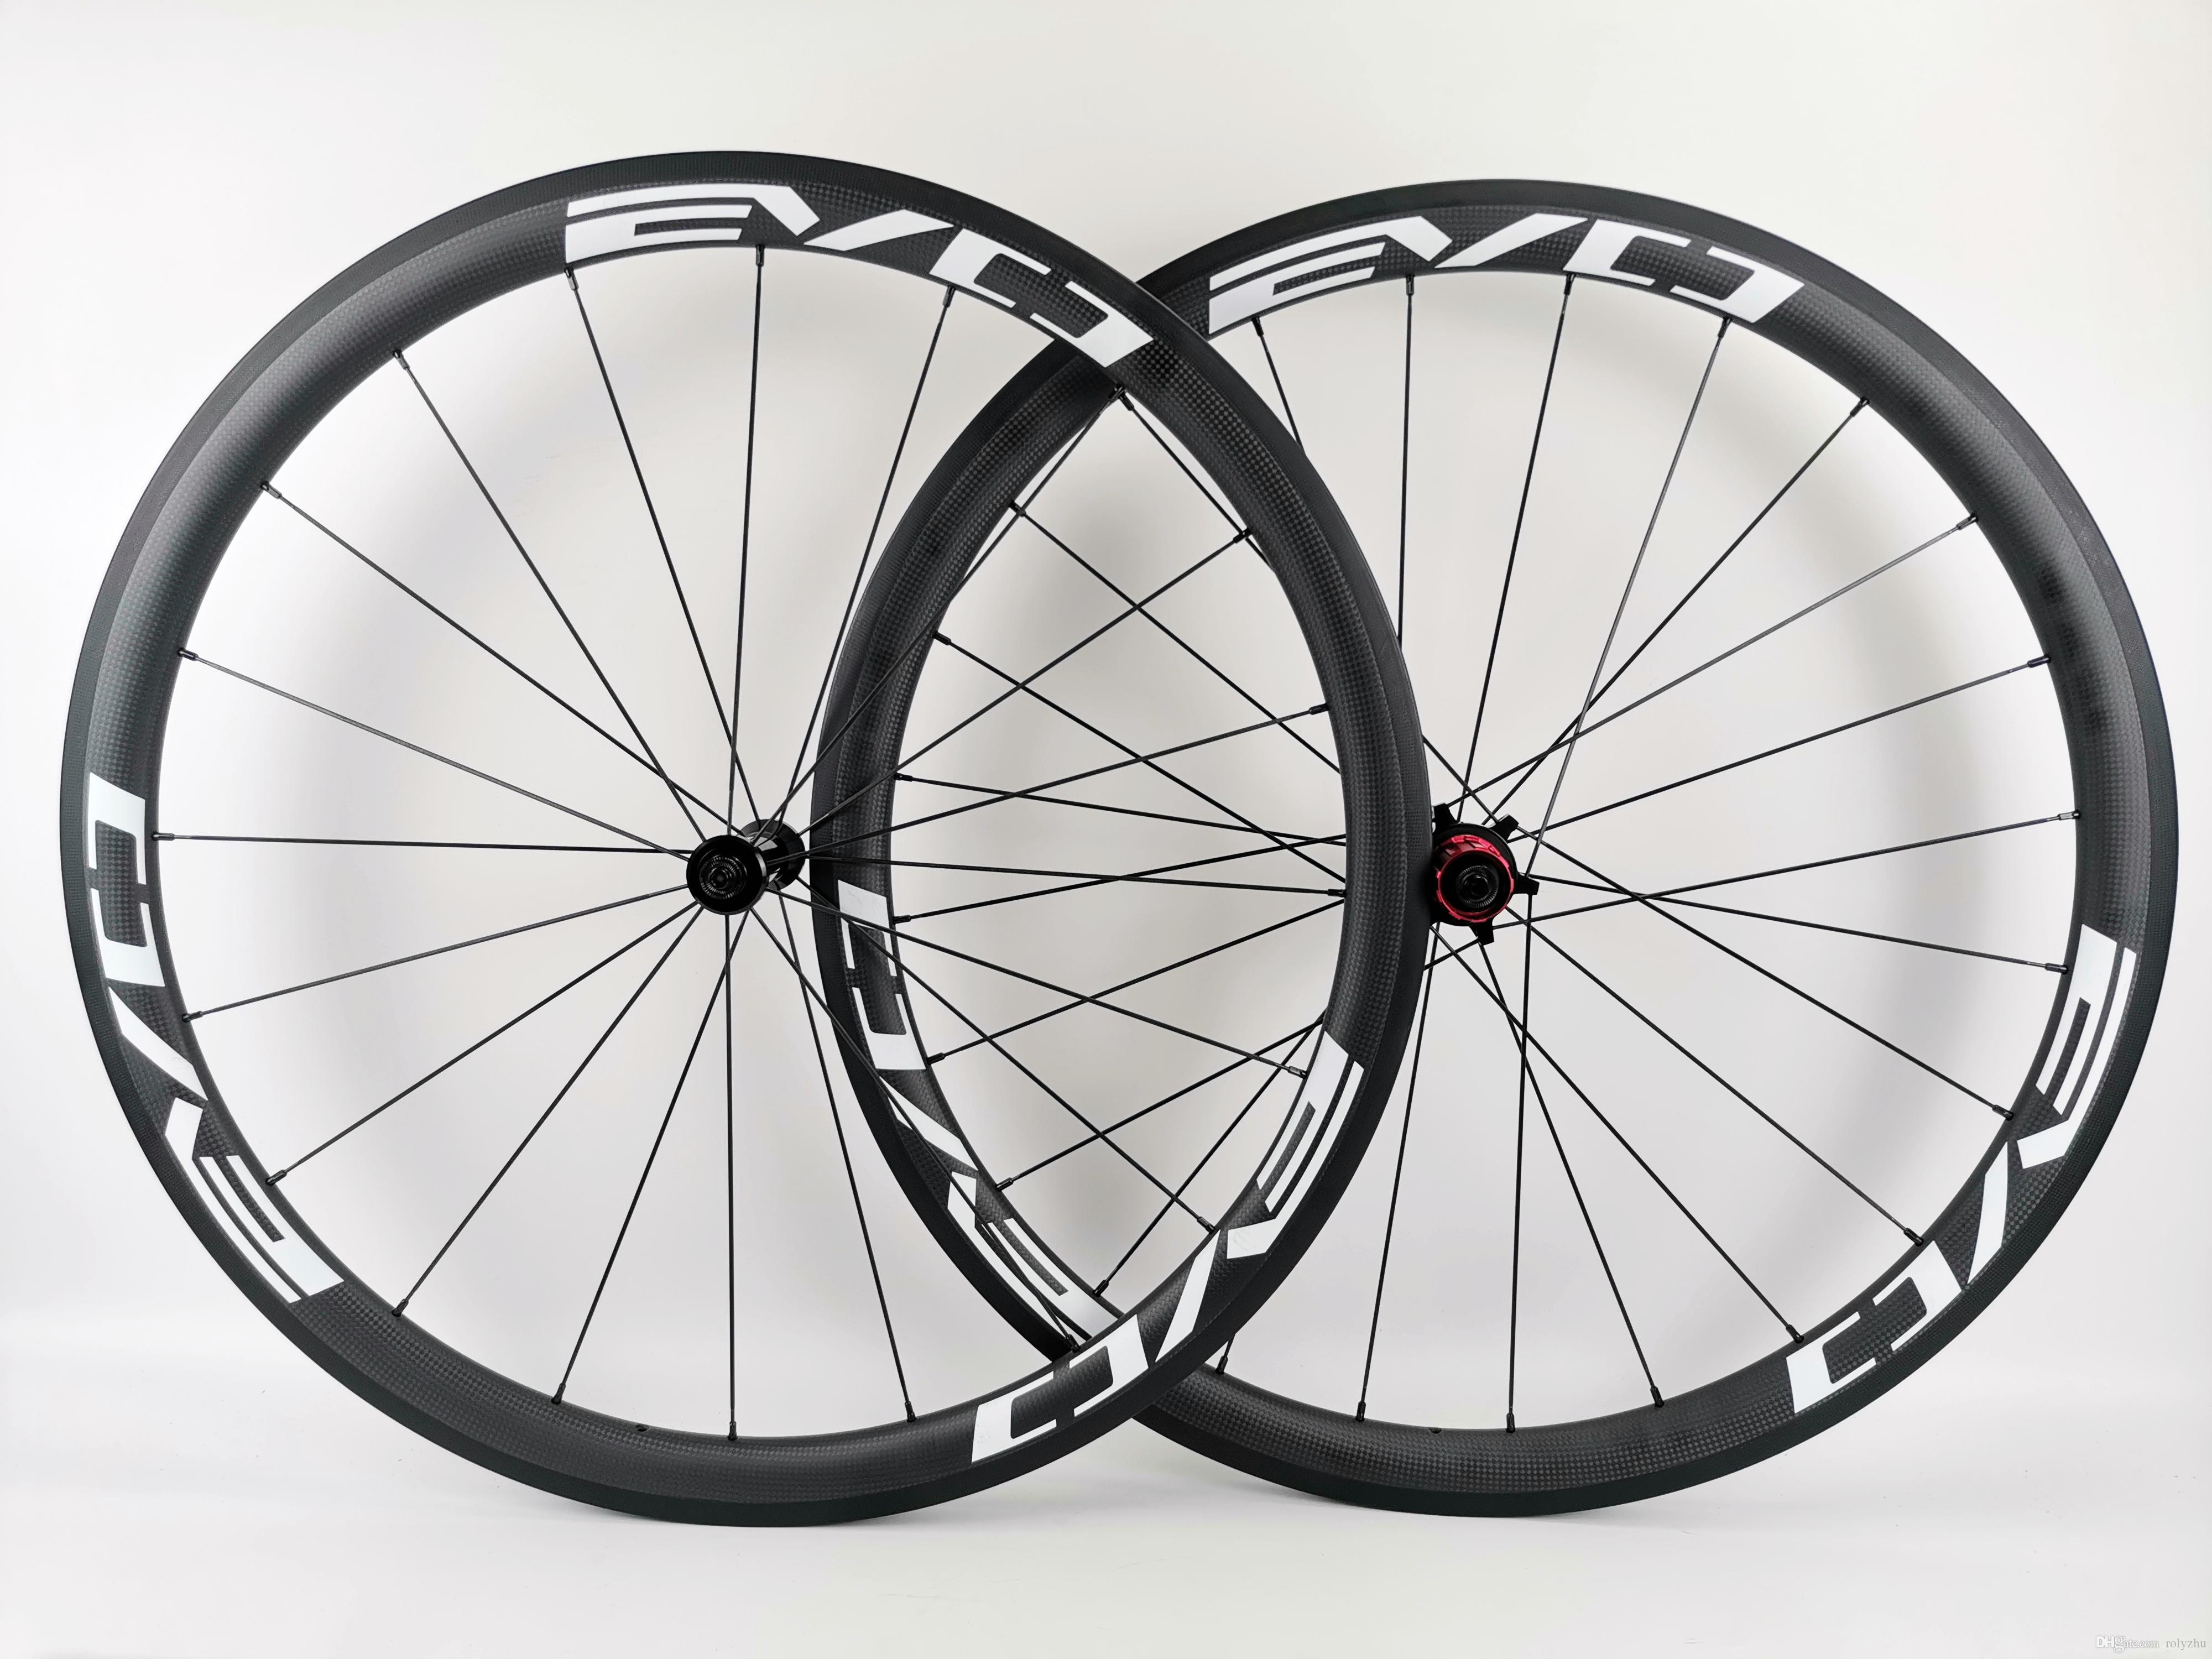 EVO full carbon wheels 38mm depth 25mm width carbon wheelset clincher/tubular road carbon bike wheelset with 3K matte finish